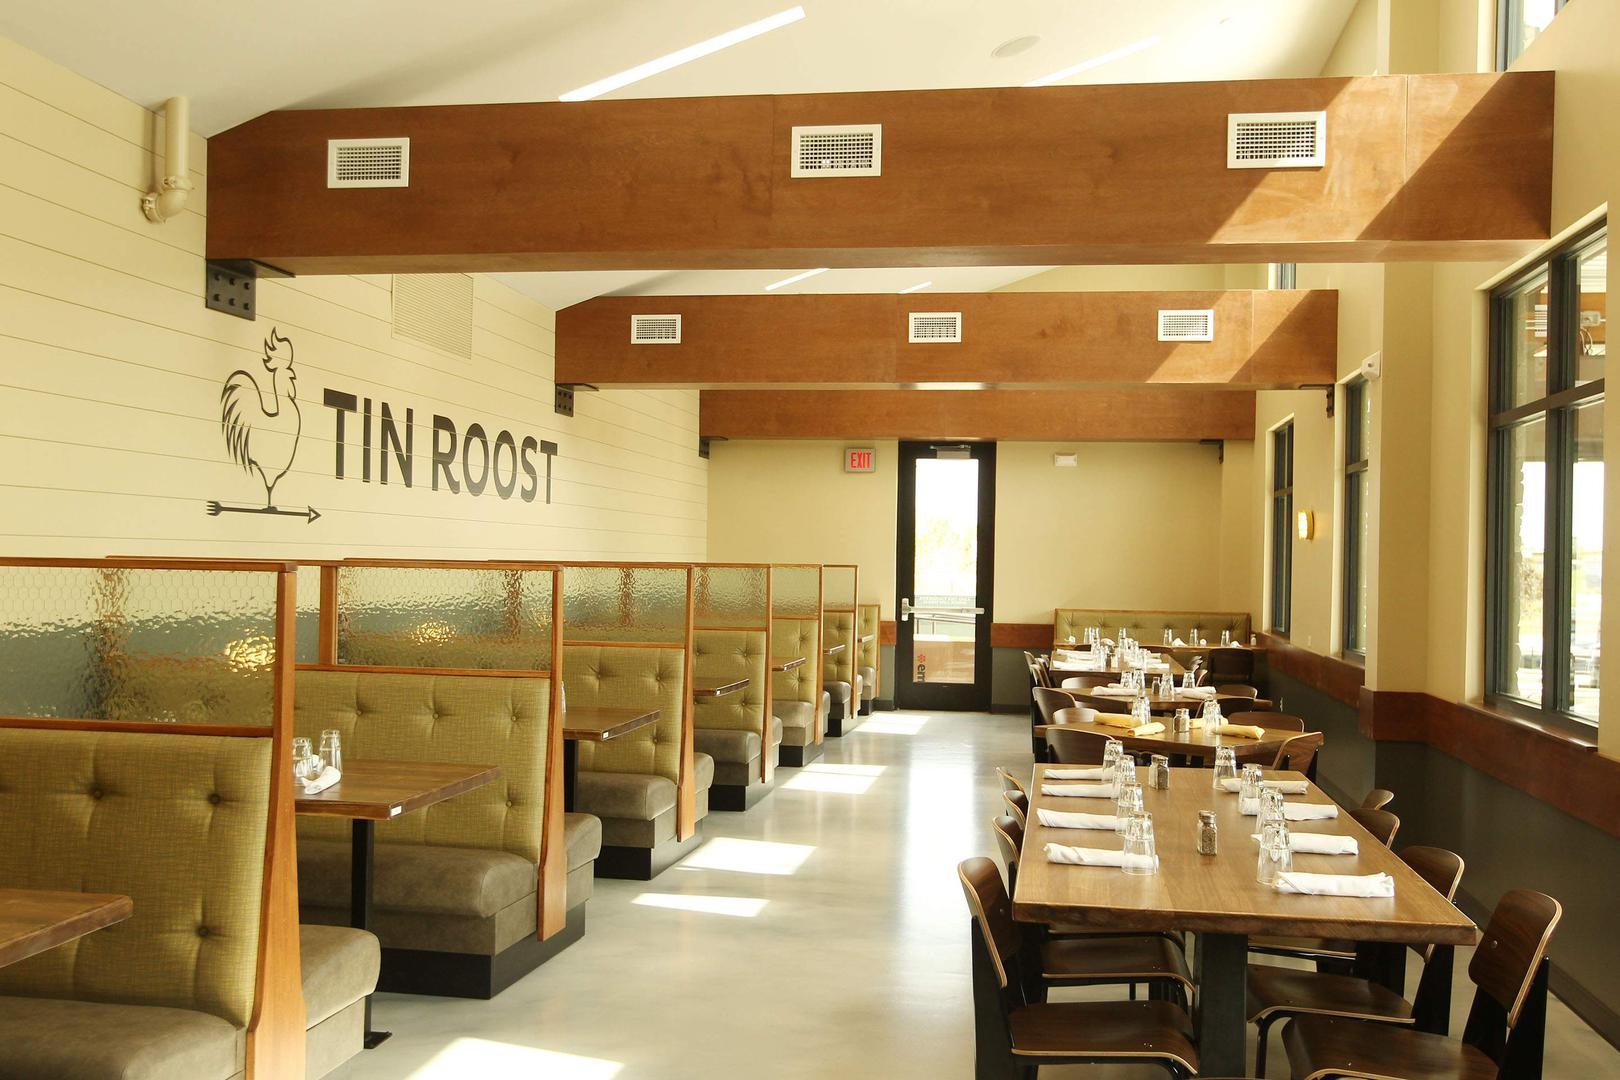 space at Tin Roost